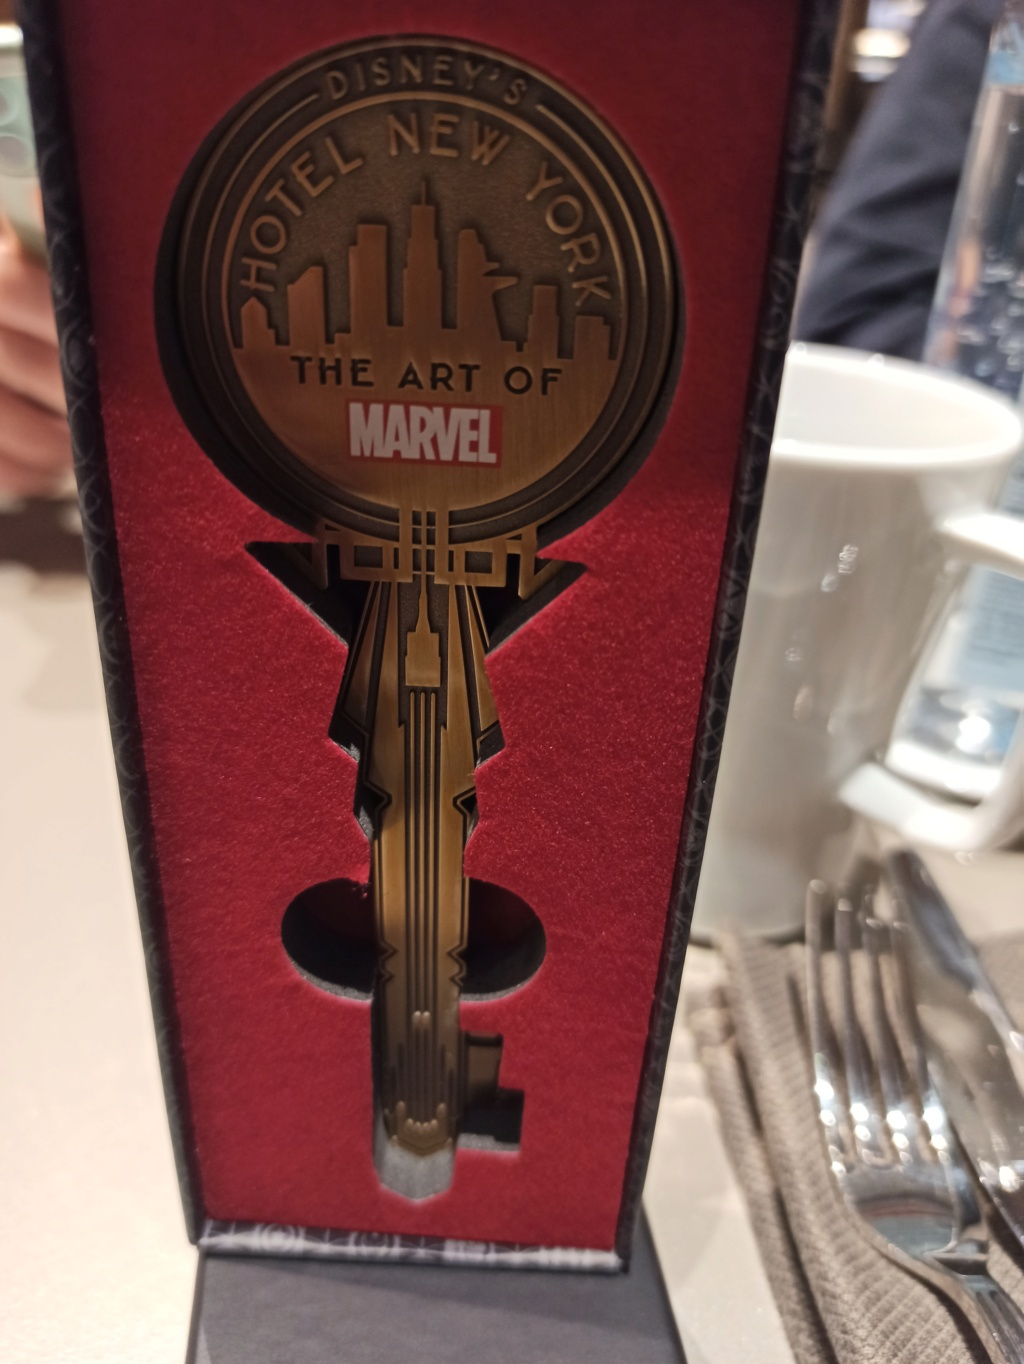 Disney's Hotel New York - The Art of Marvel [2021] - Page 39 Img_2094